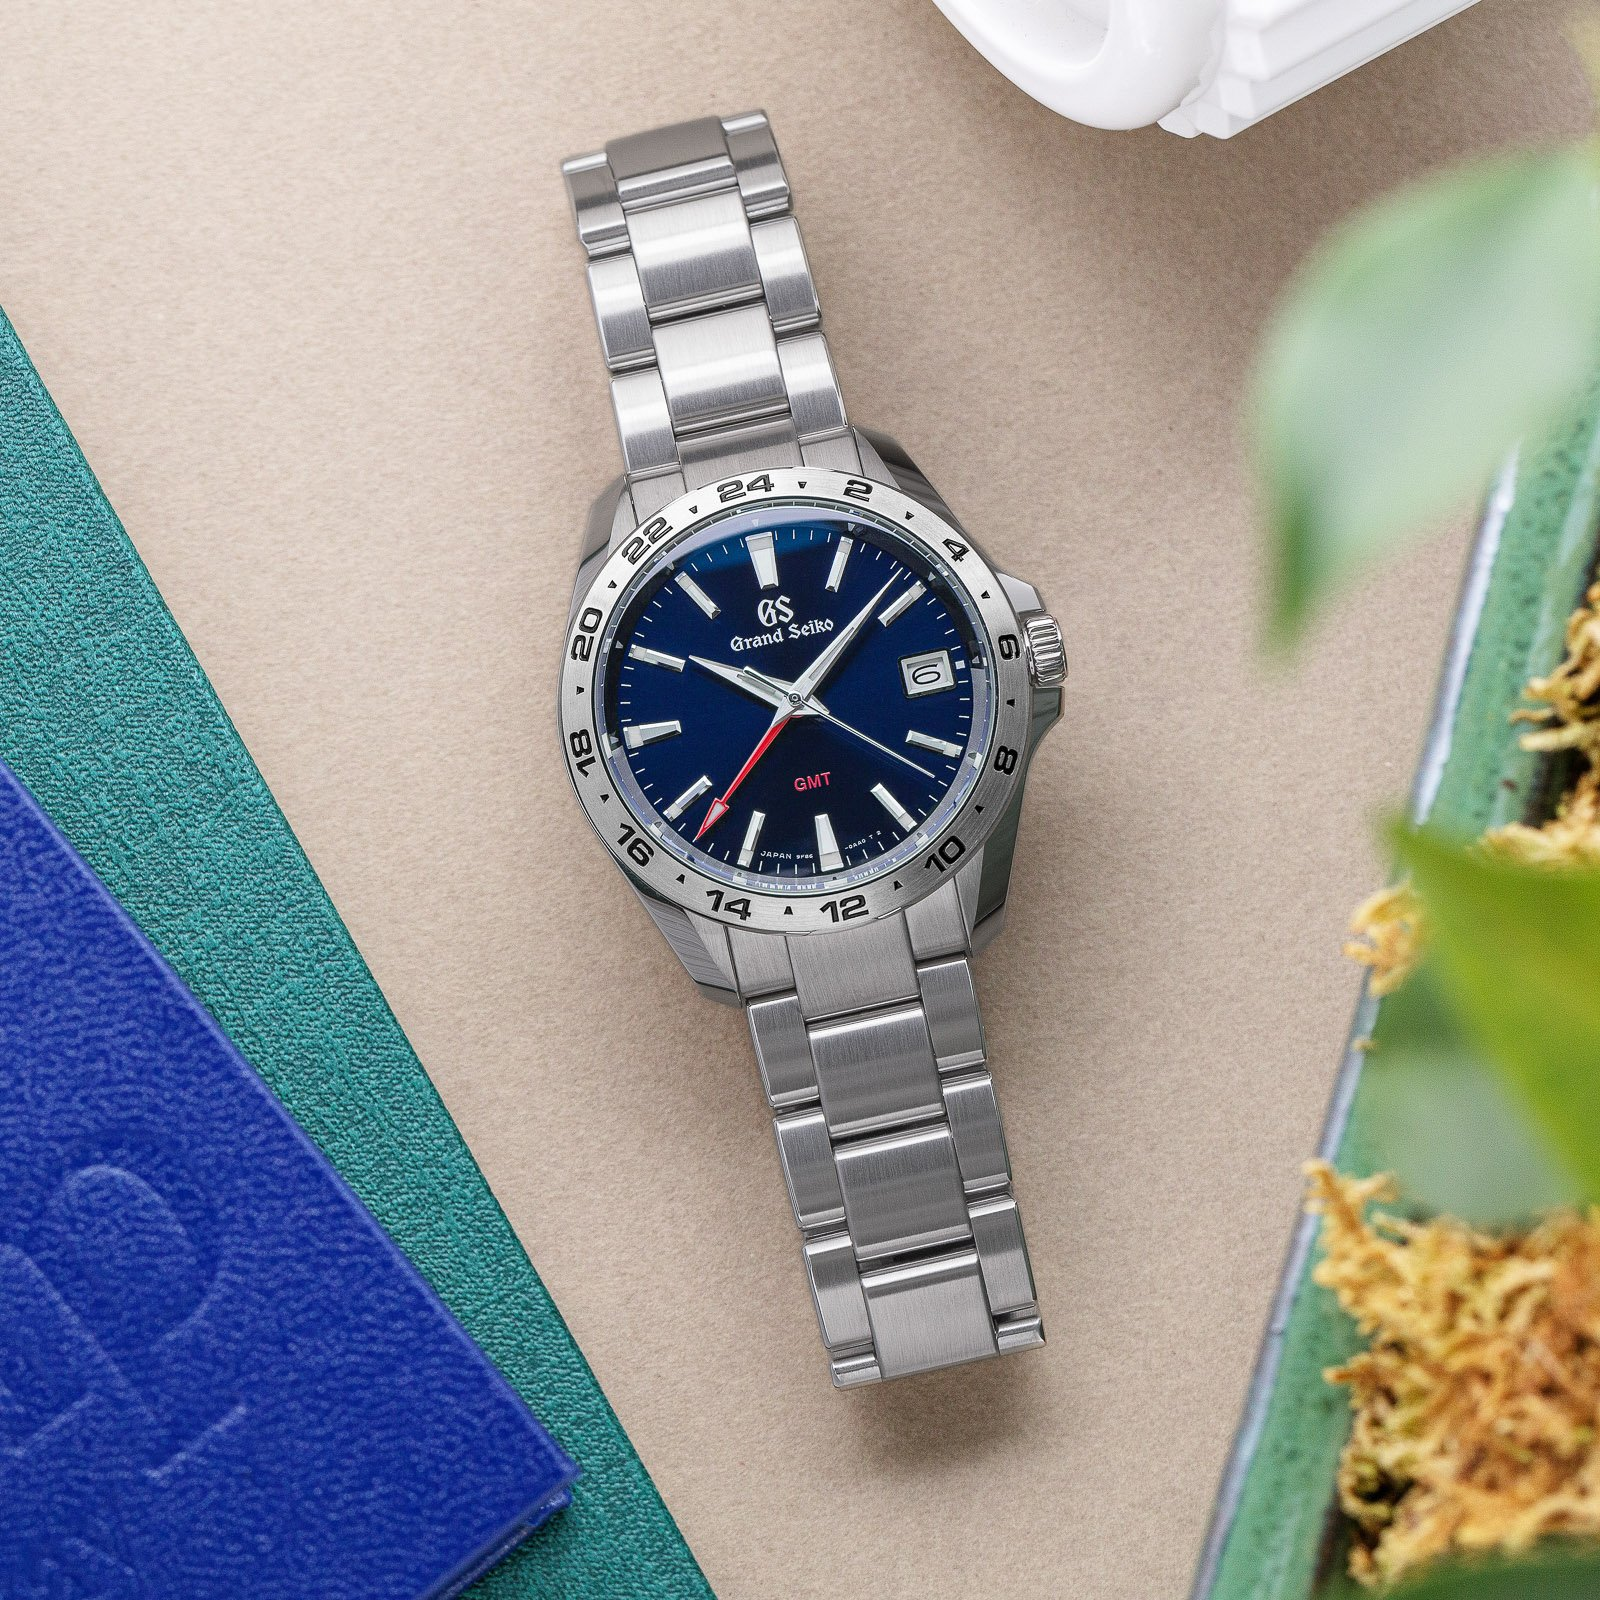 Grand Seiko SBGN005 - blue dial stainless steel wristwatch atop a table.